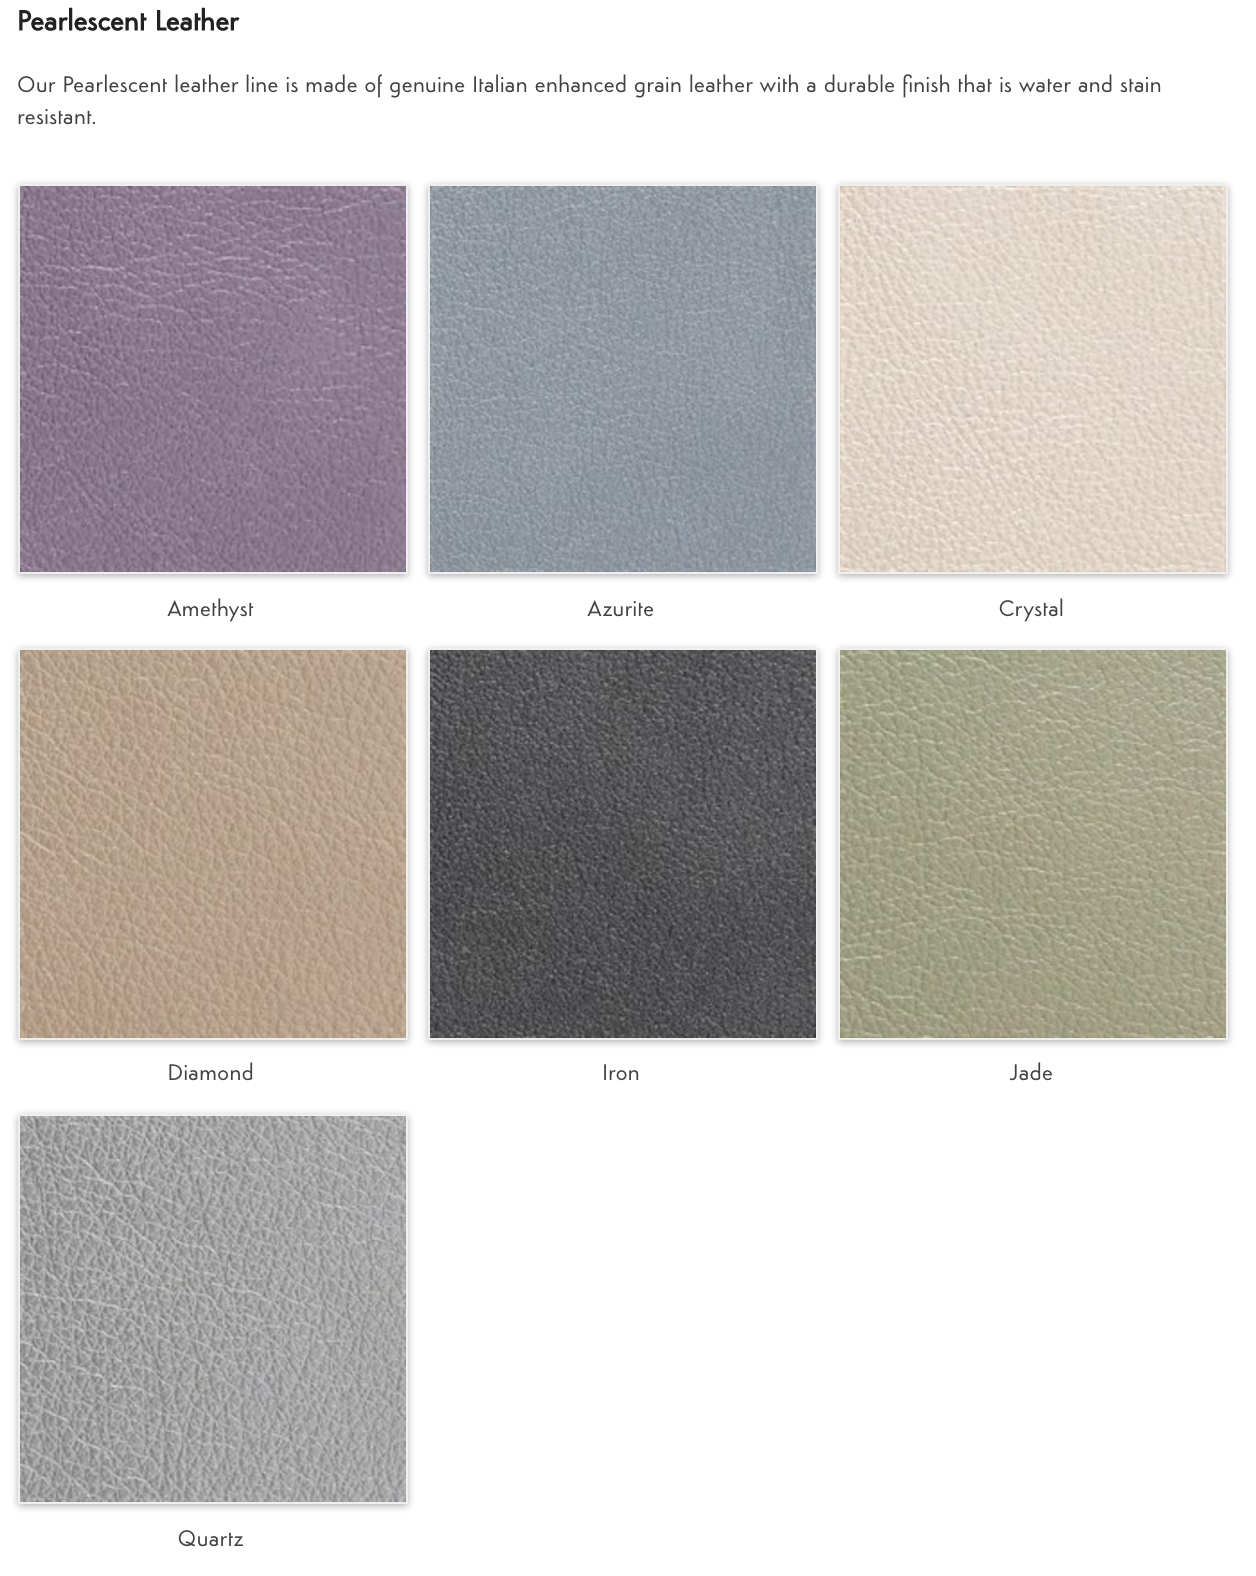 Pearlescent Leather.png